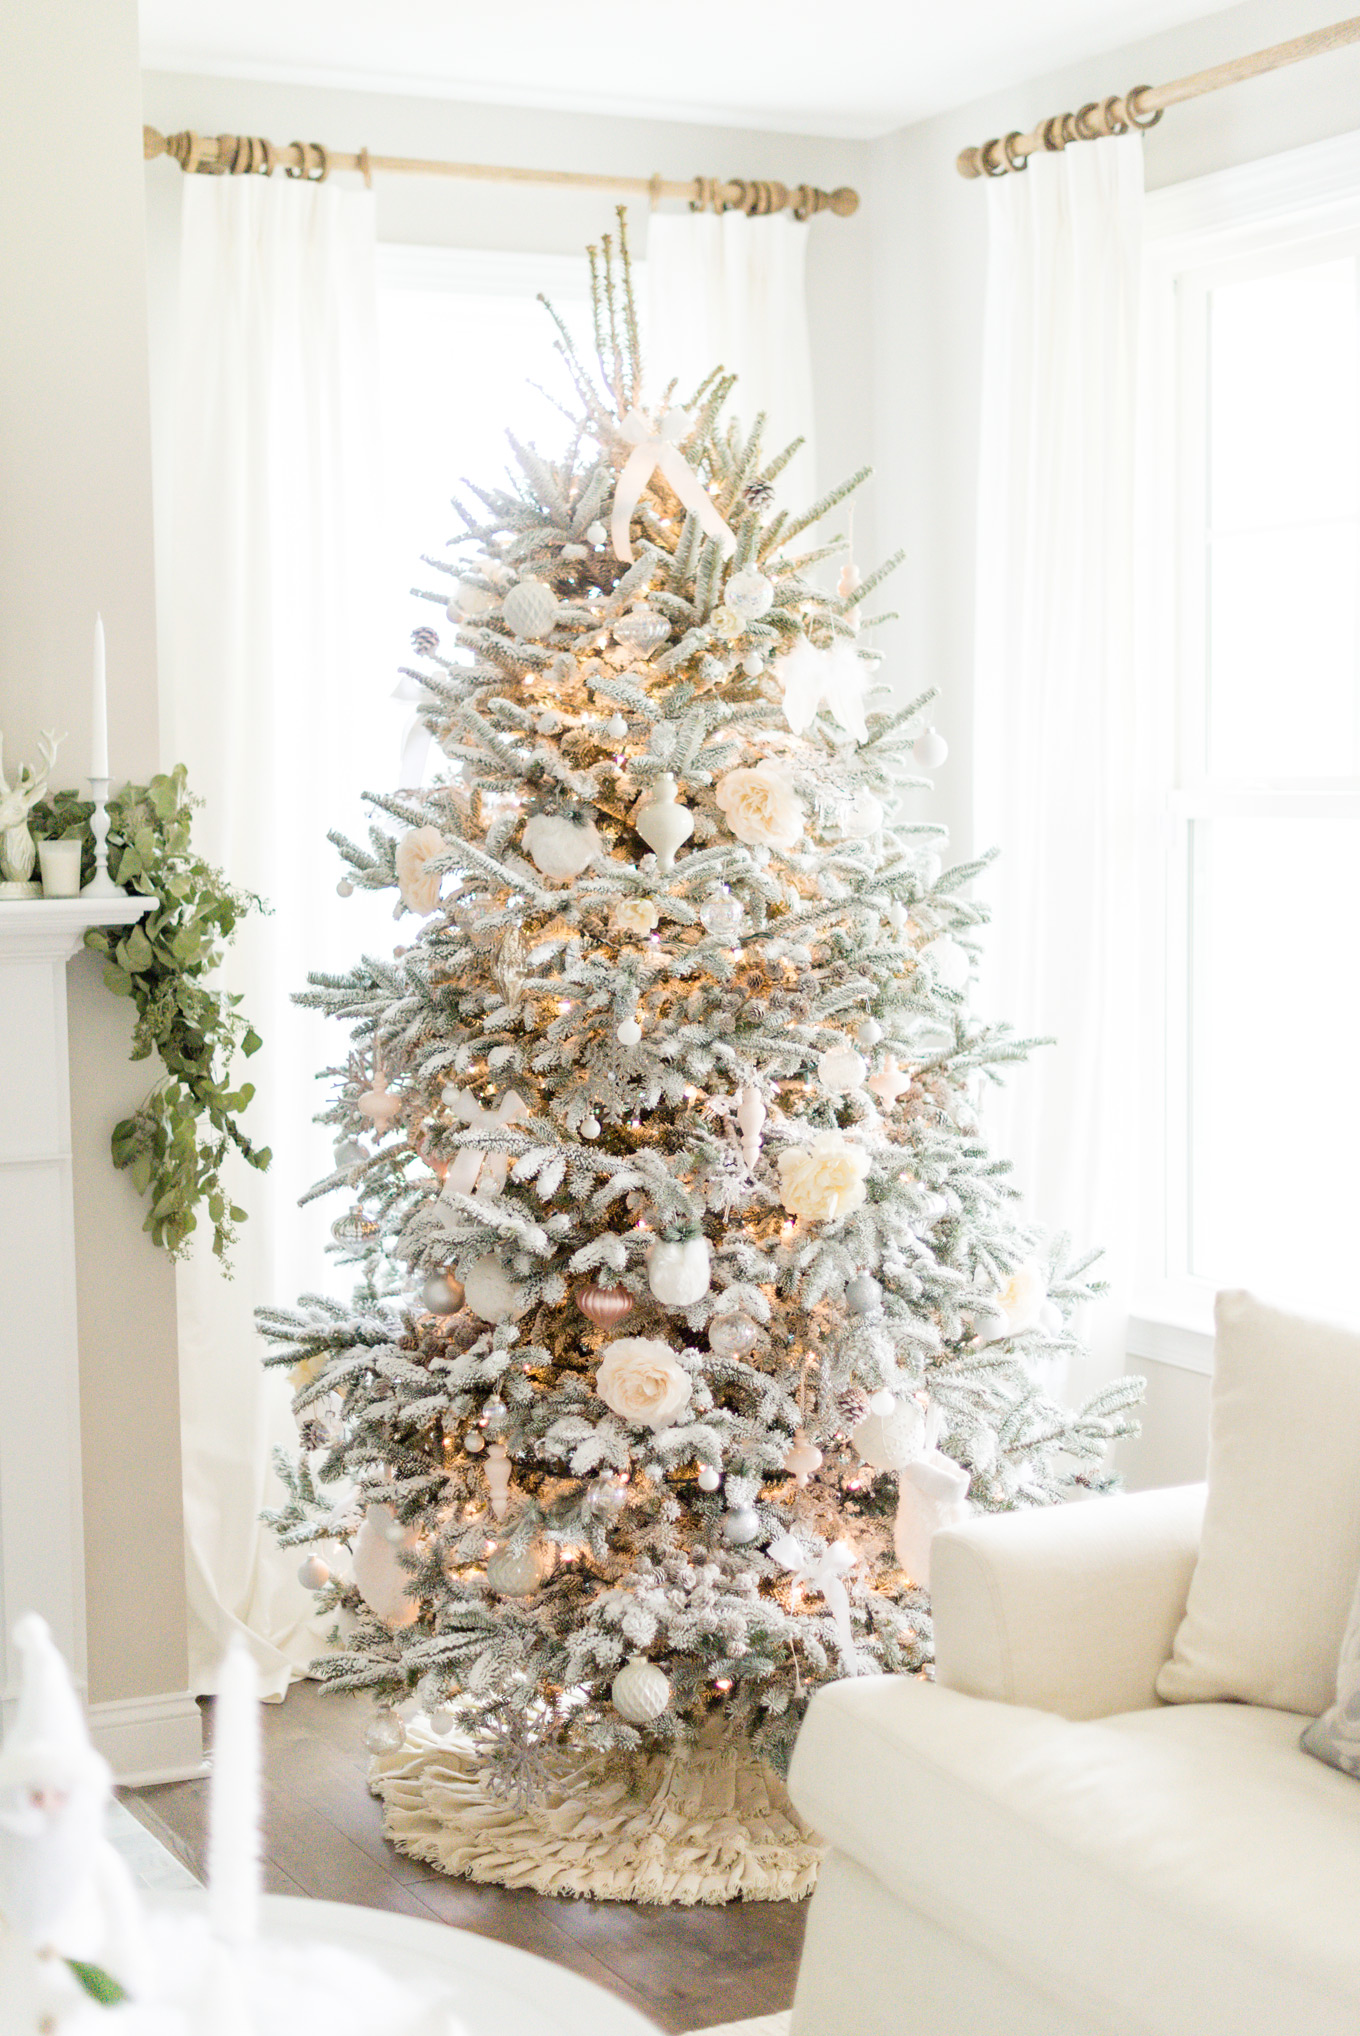 White christmas tree | Lifestyle Blogger Elle Bowes shares holiday home decor ideas.